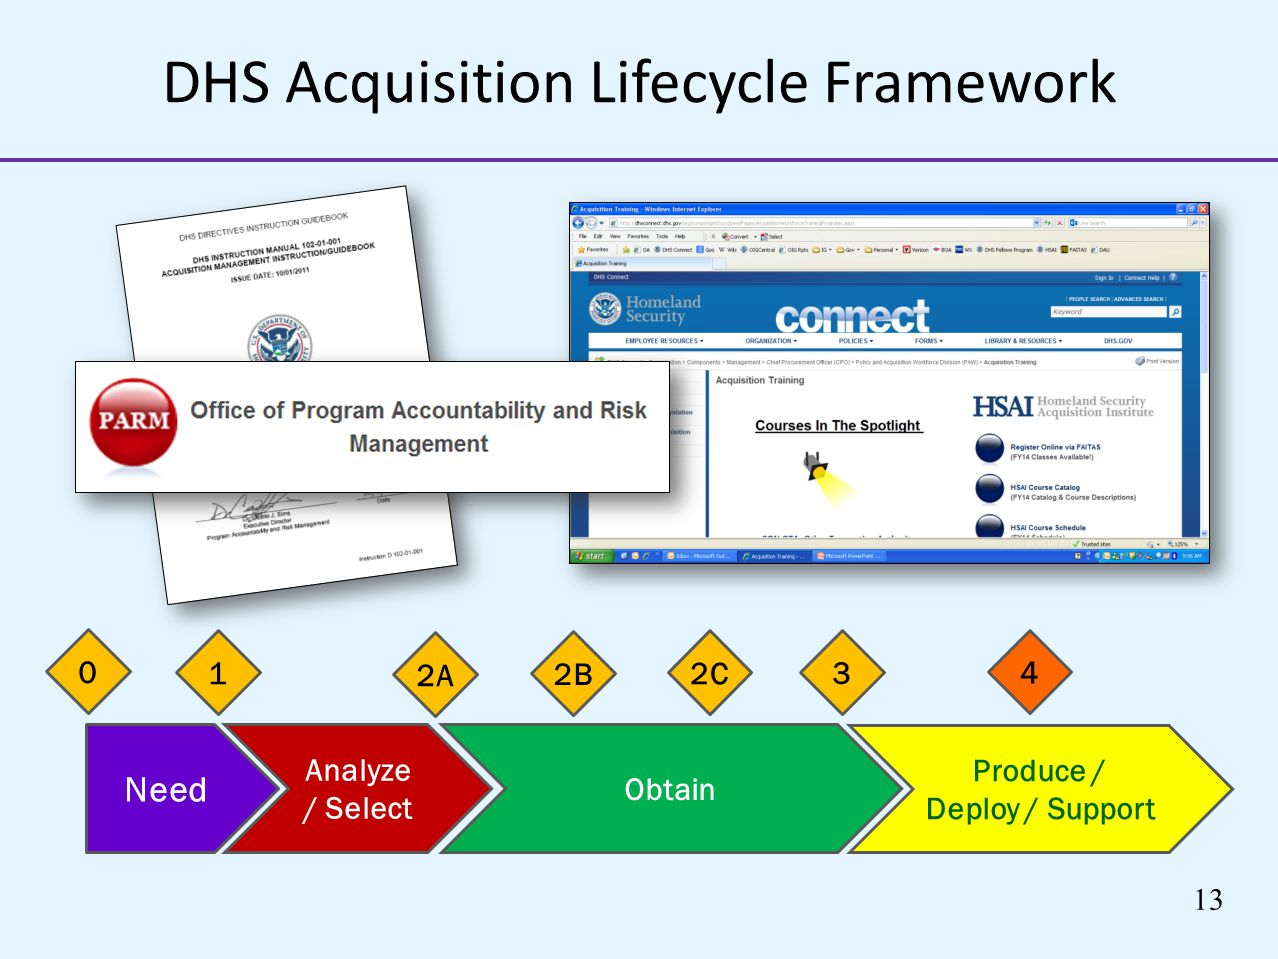 DHS Acquisition Lifecycle Framework